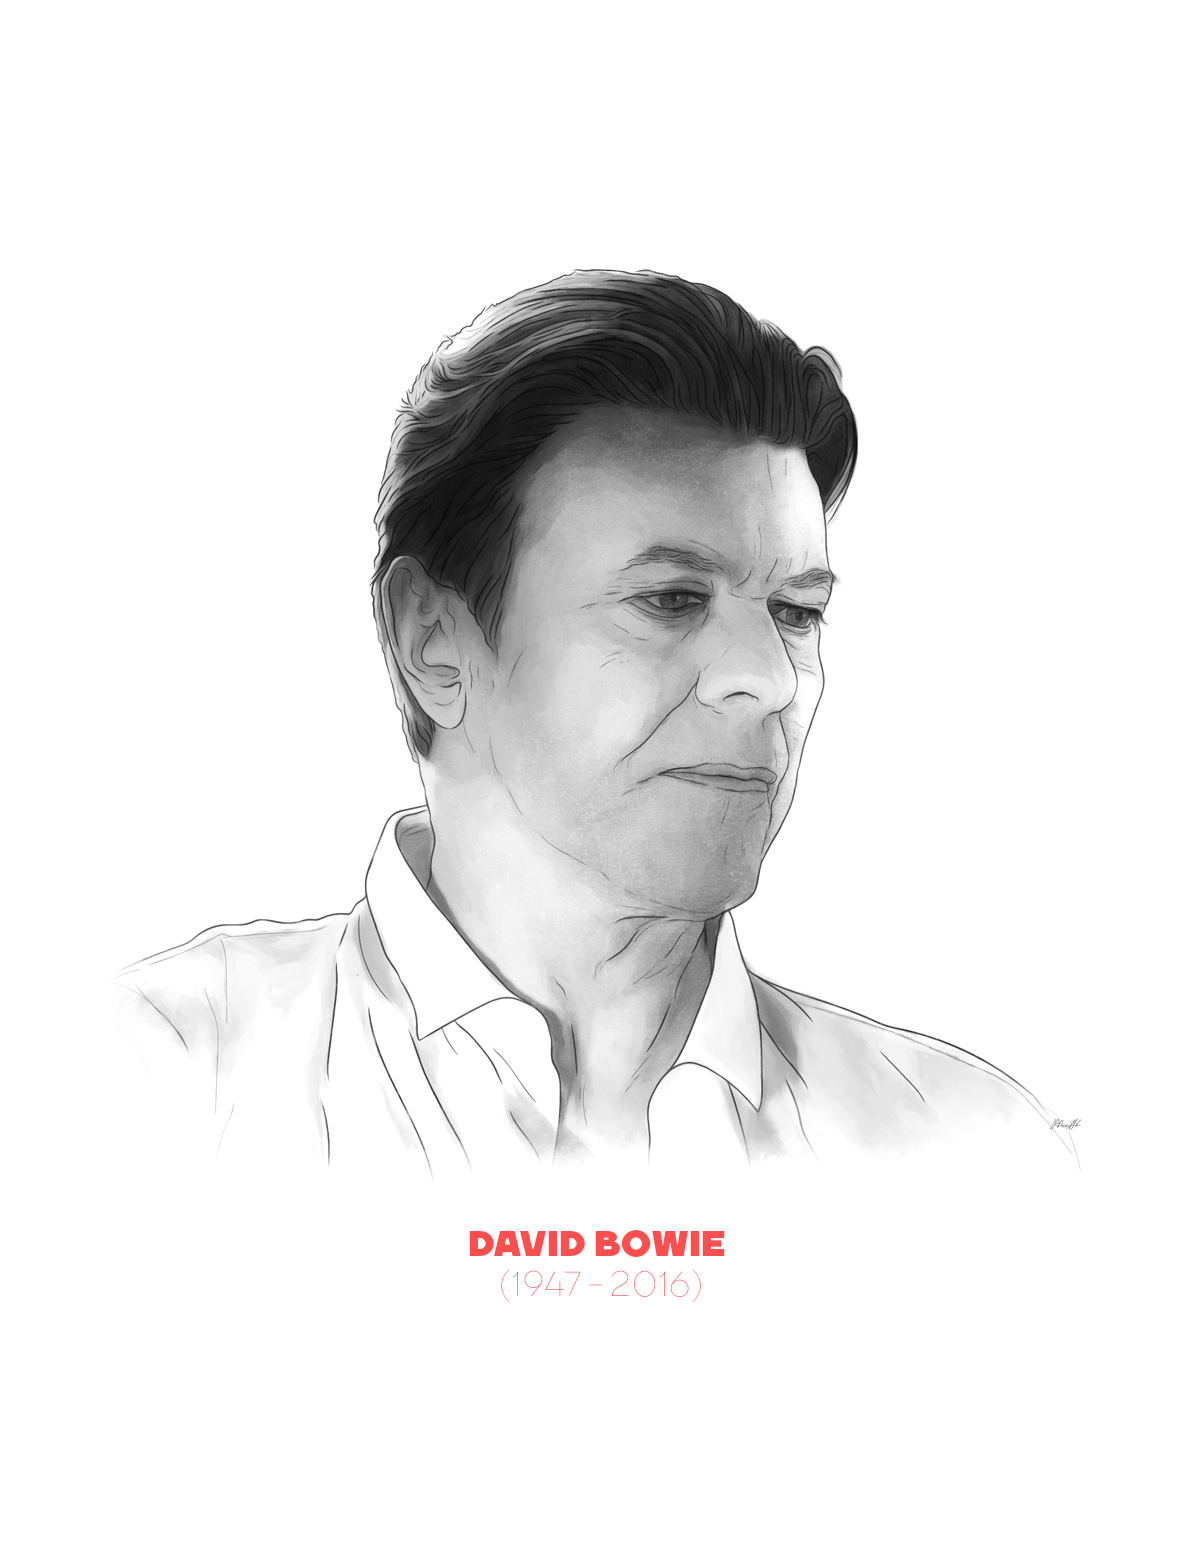 David Bowie portrait from People of 2016 series, by Max Hancock